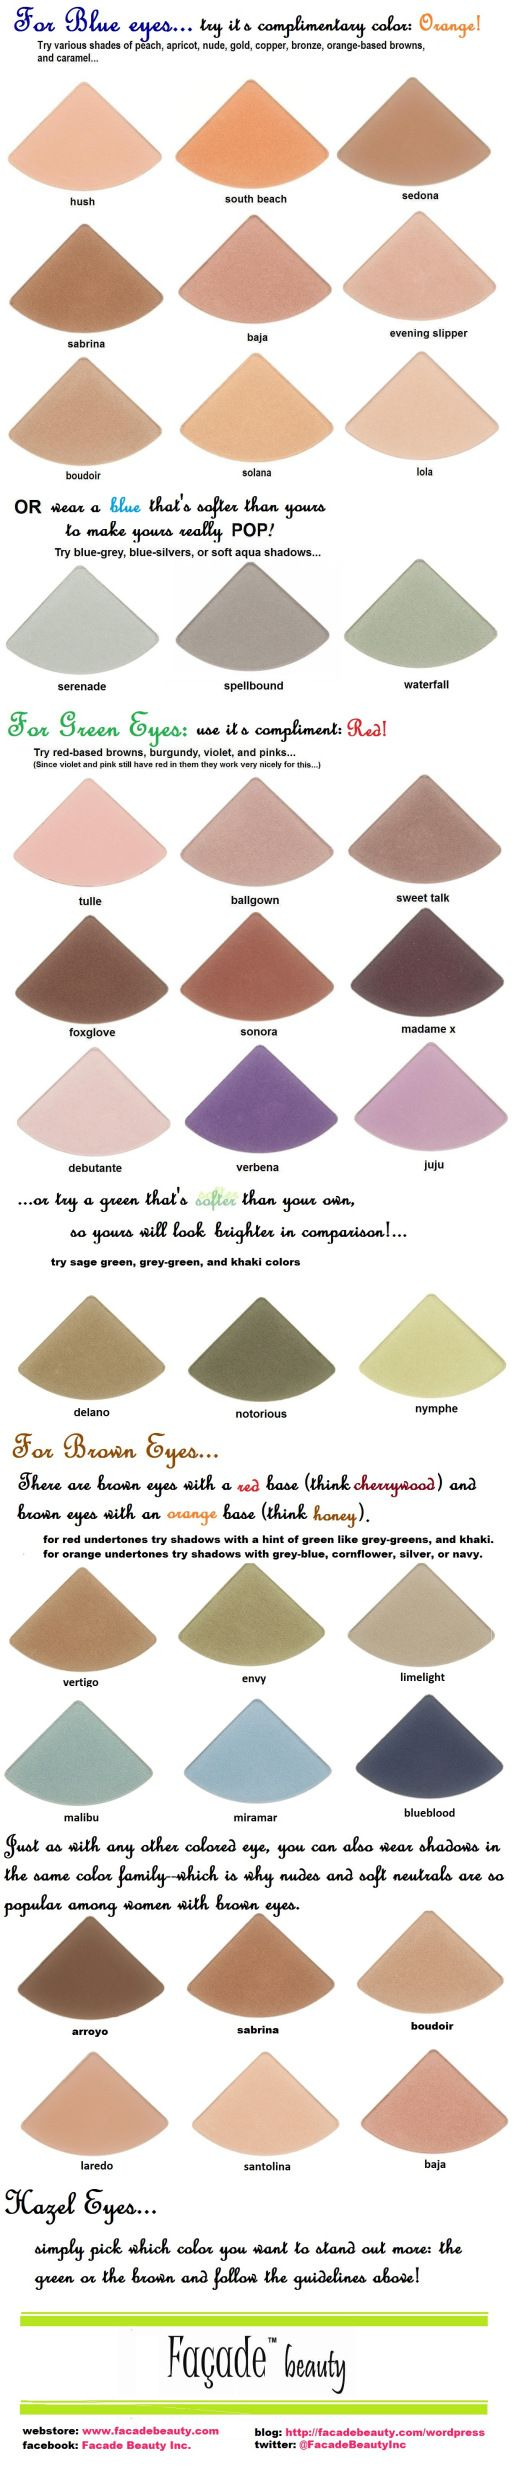 best eyeshadows for colored eyes. This really helps me on my colors because one eye is green and one is hazel!